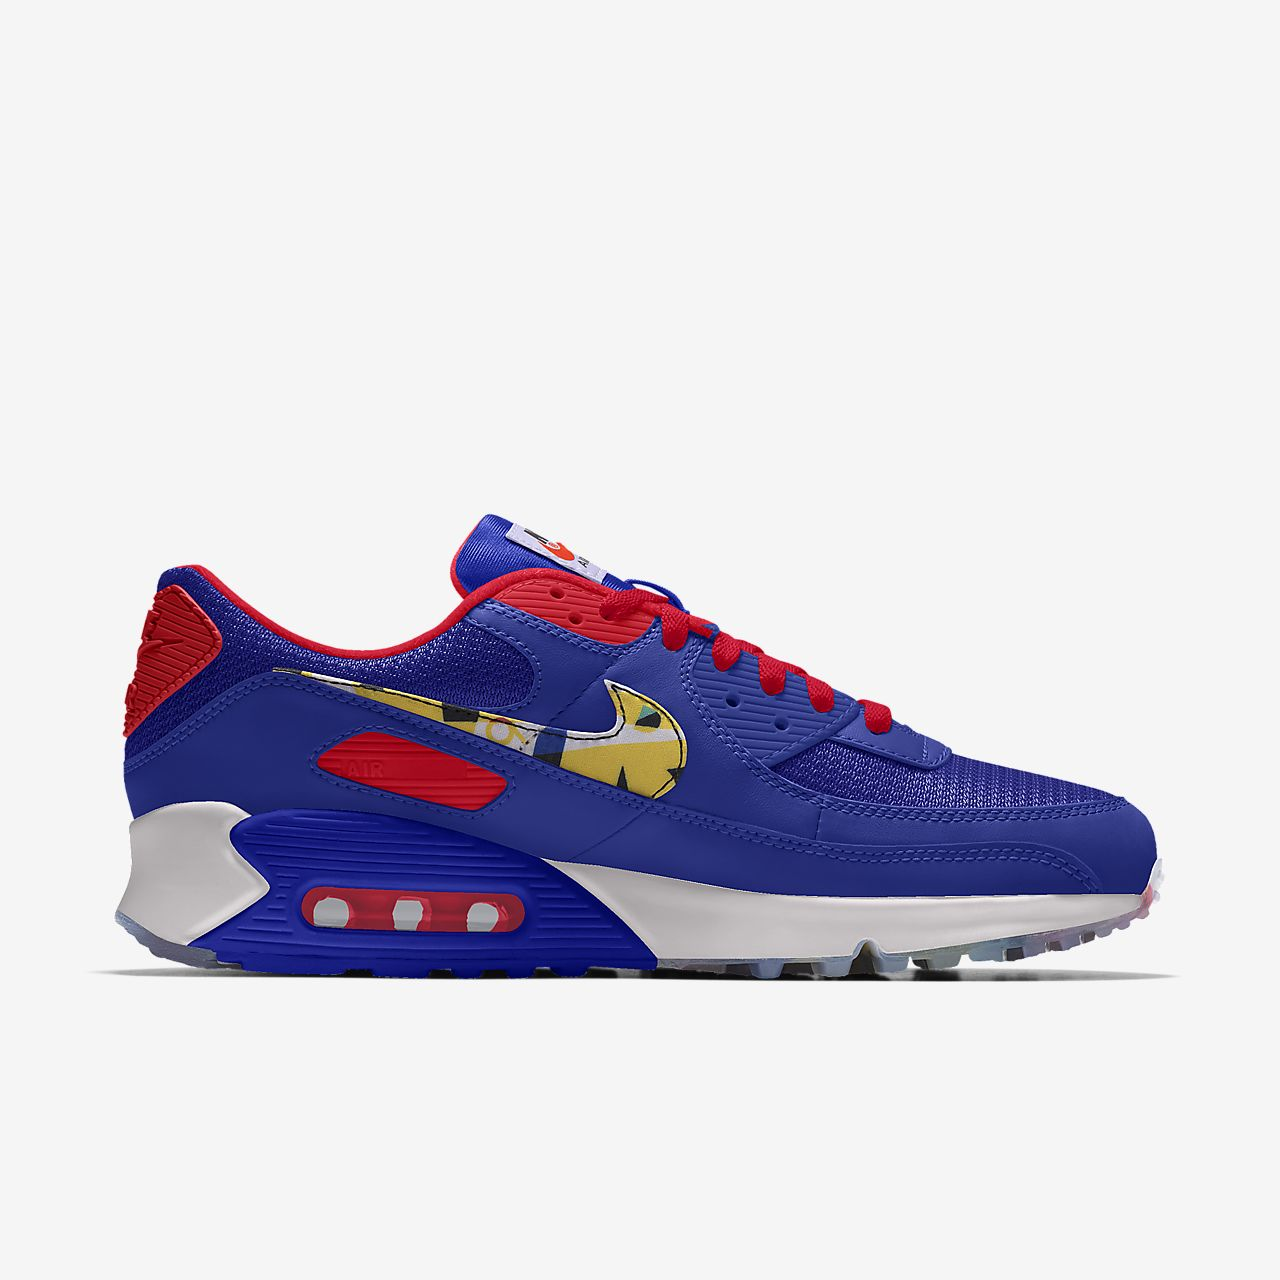 Womens size the best Nike Off White Air Max 90 OW replica